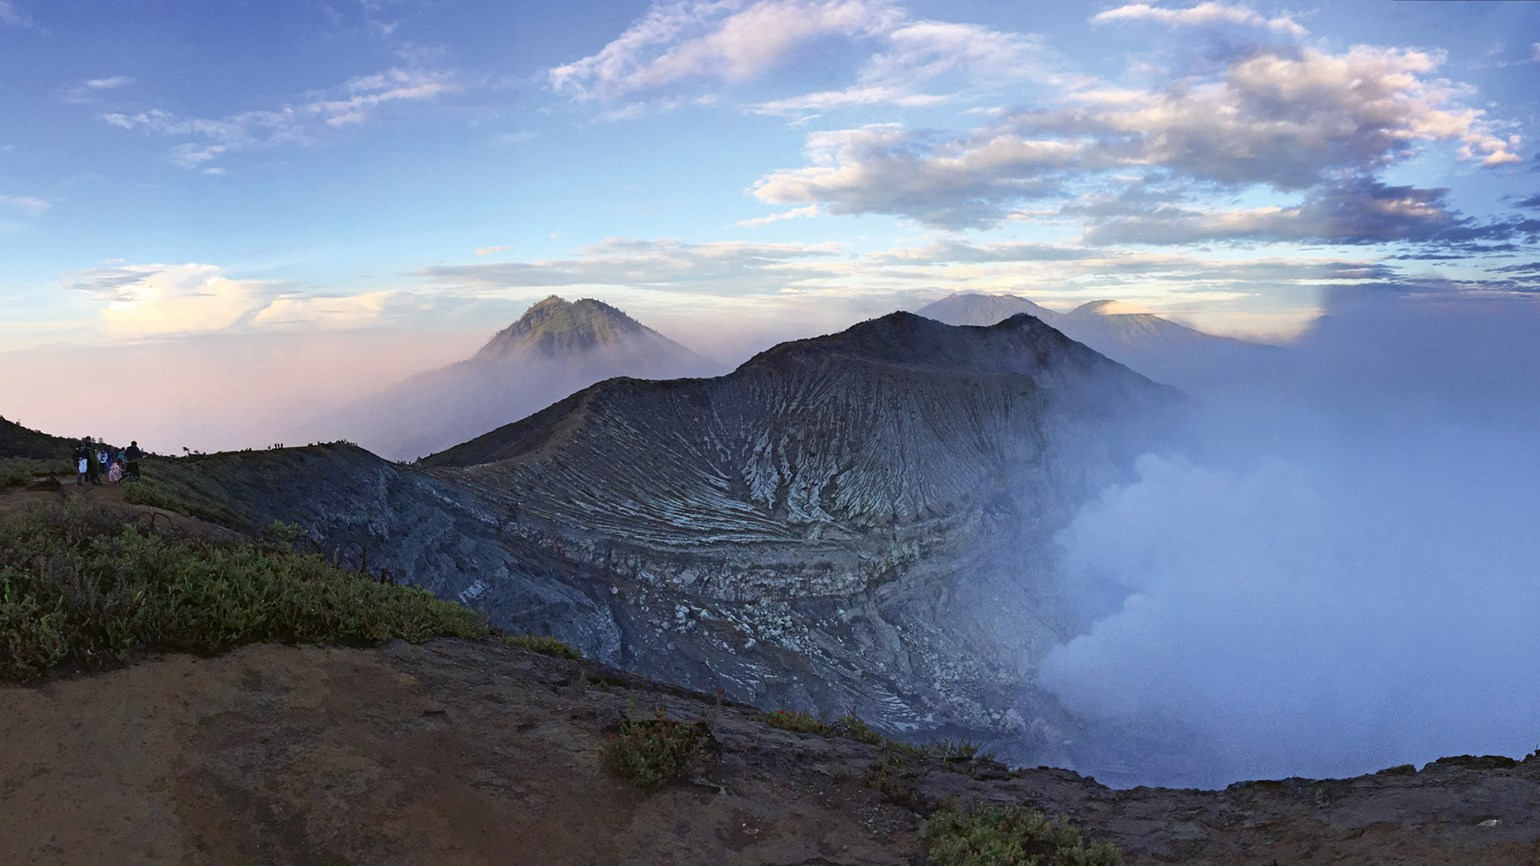 Spiritual sites, natural wonders in Indonesia